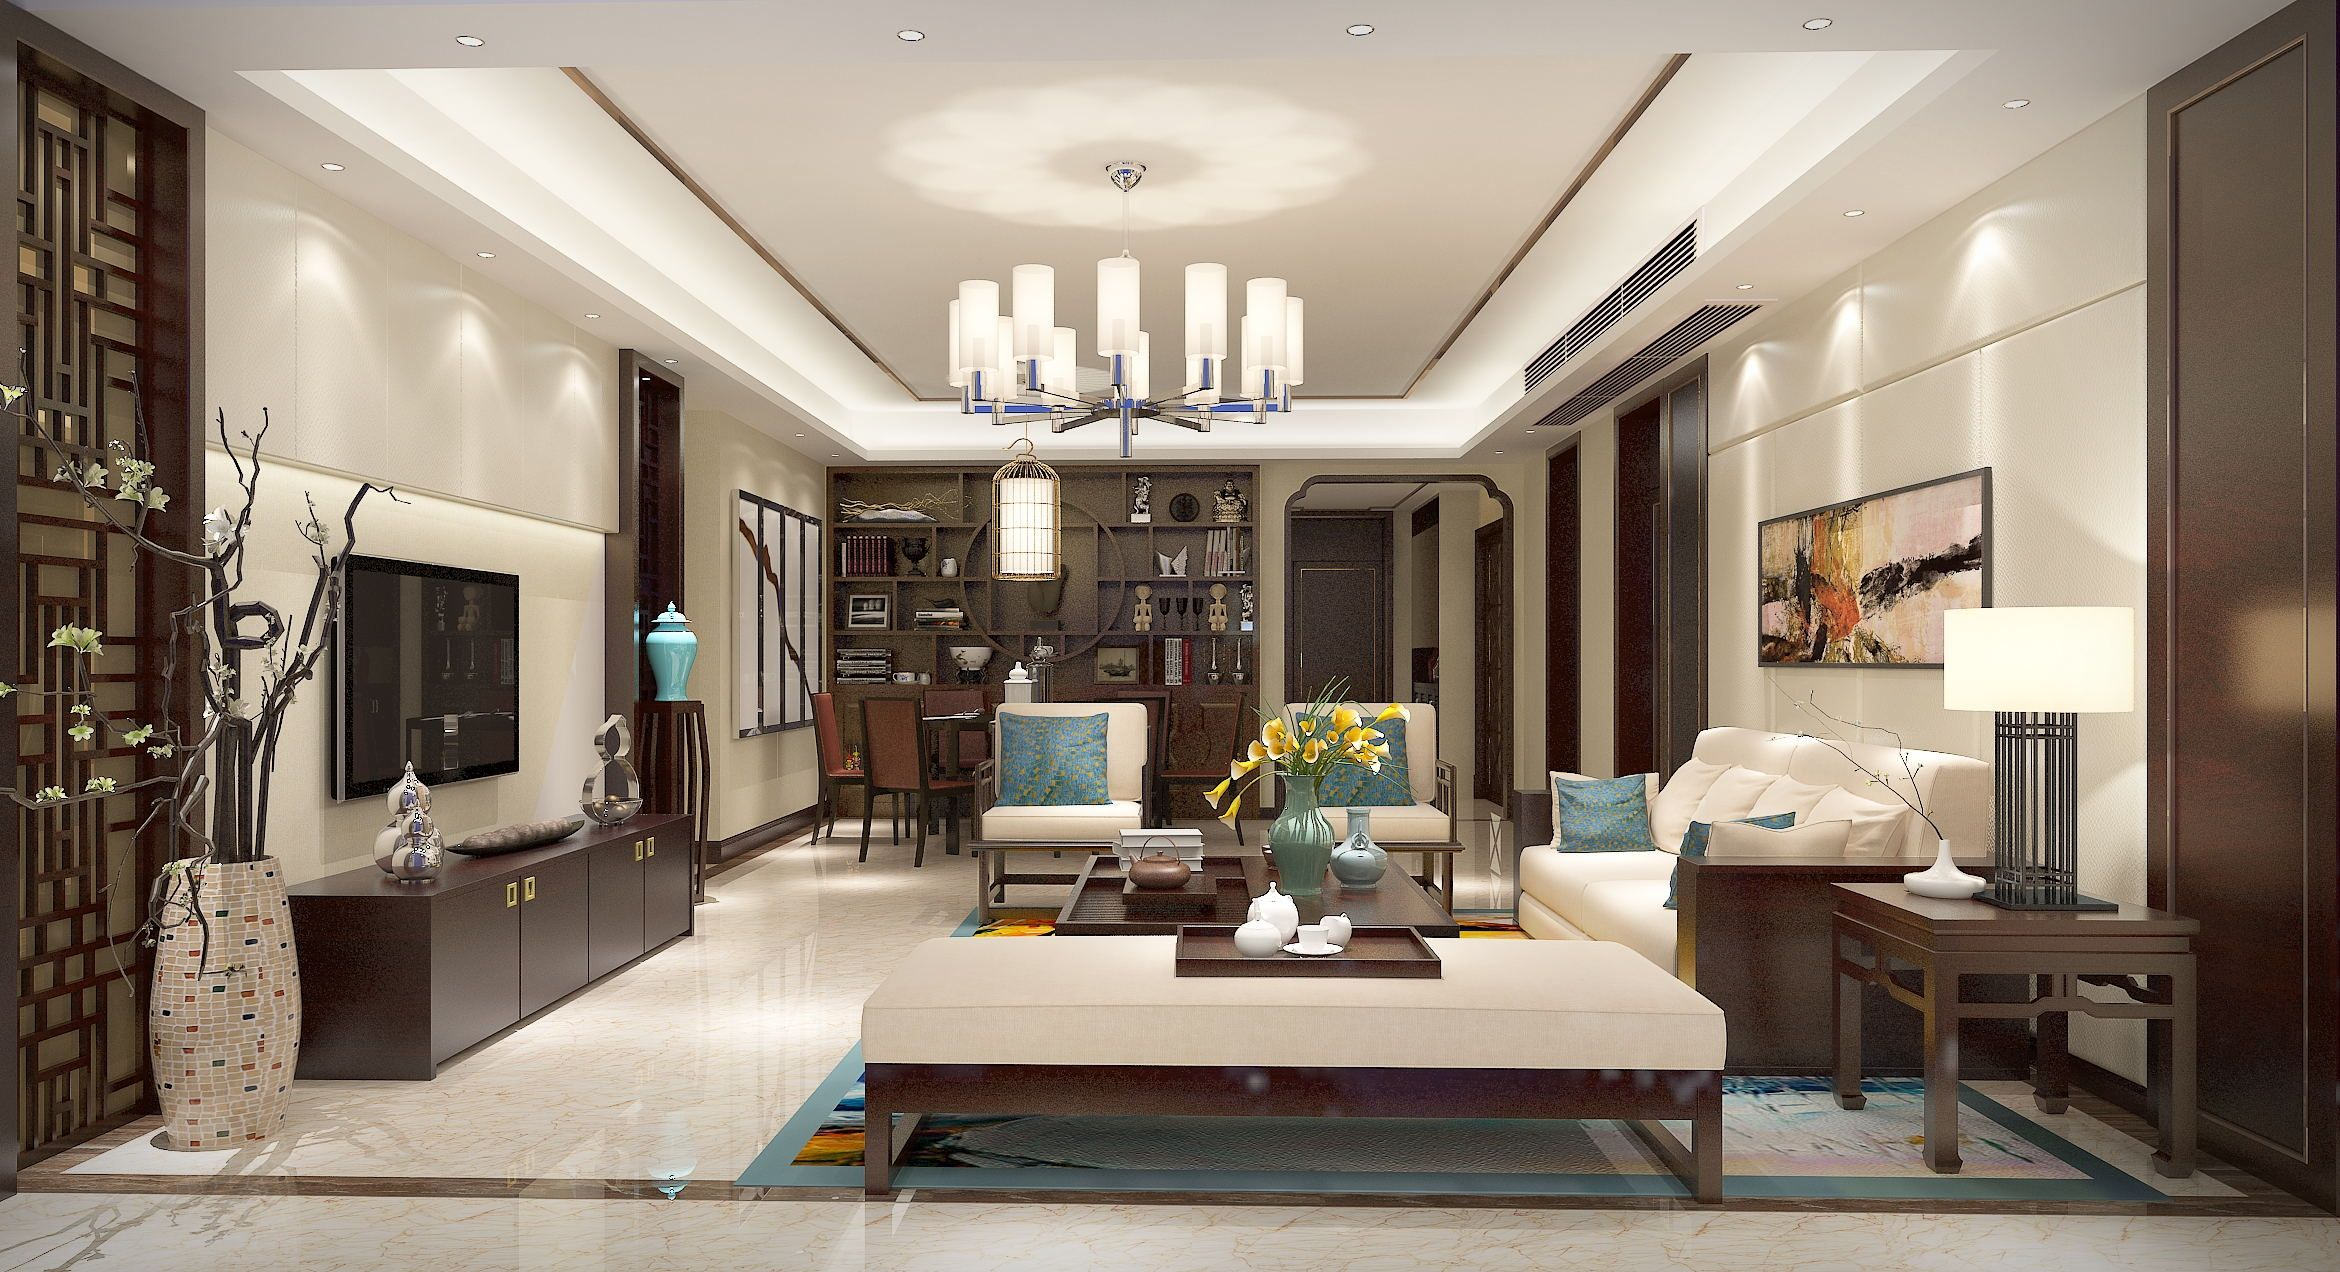 Attractive Asian Style Living Room Fresh Asian Style Living Room 85 For Dining Room Furnitur Asian Home Decor Modern Country Bathrooms Country Bathroom Decor